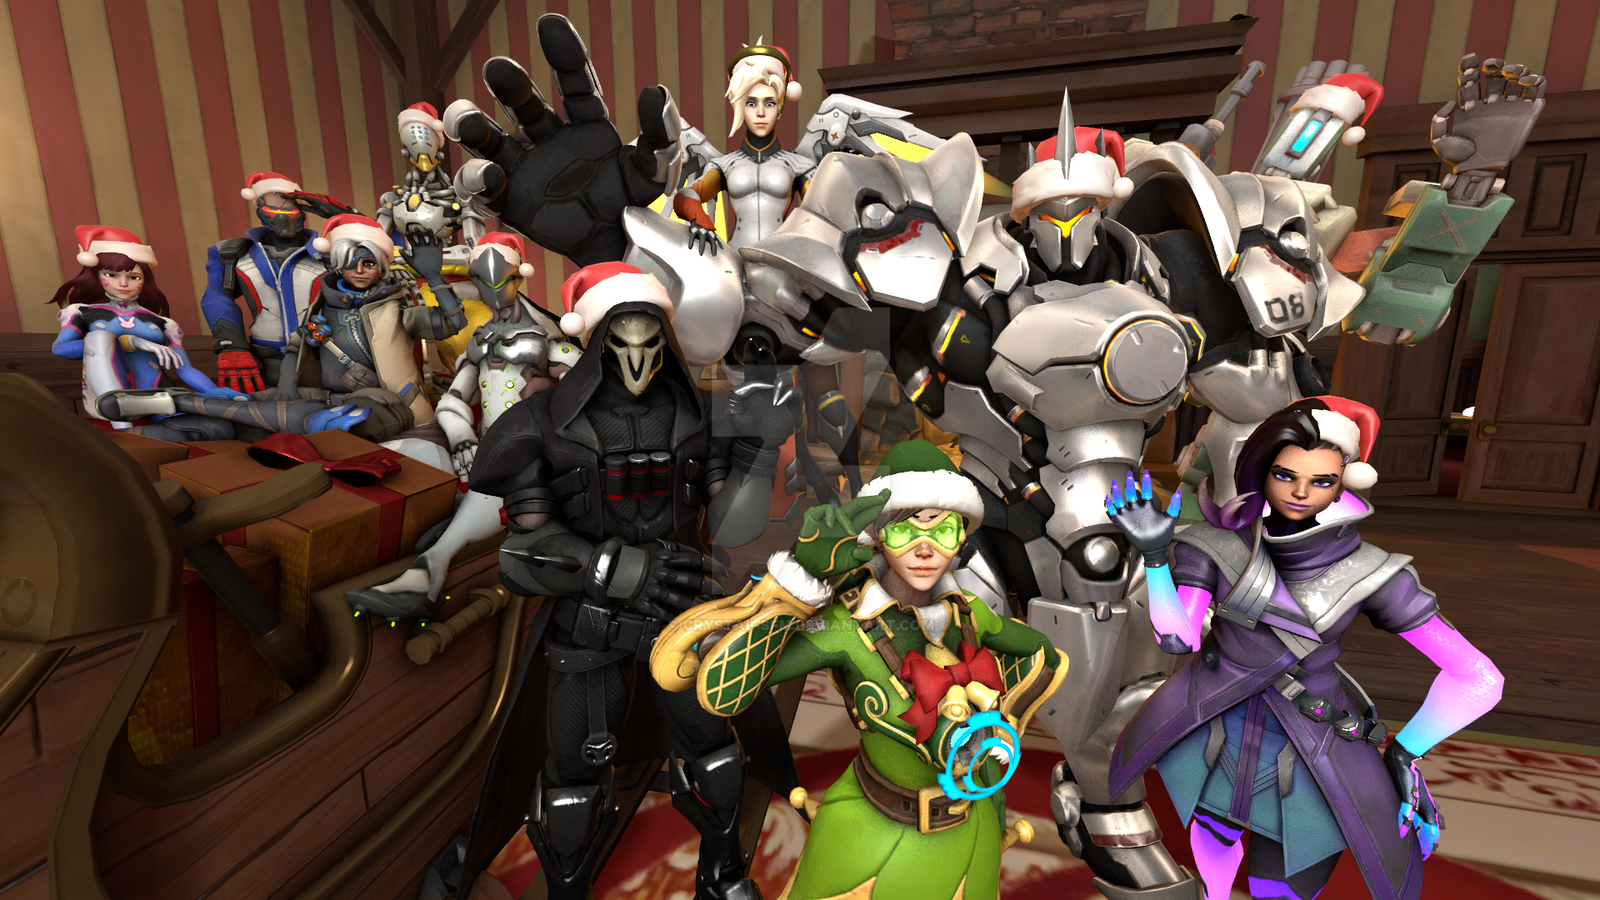 Sfm overwatch 2017 merry christmas by crystal sfm on - Overwatch christmas wallpaper ...